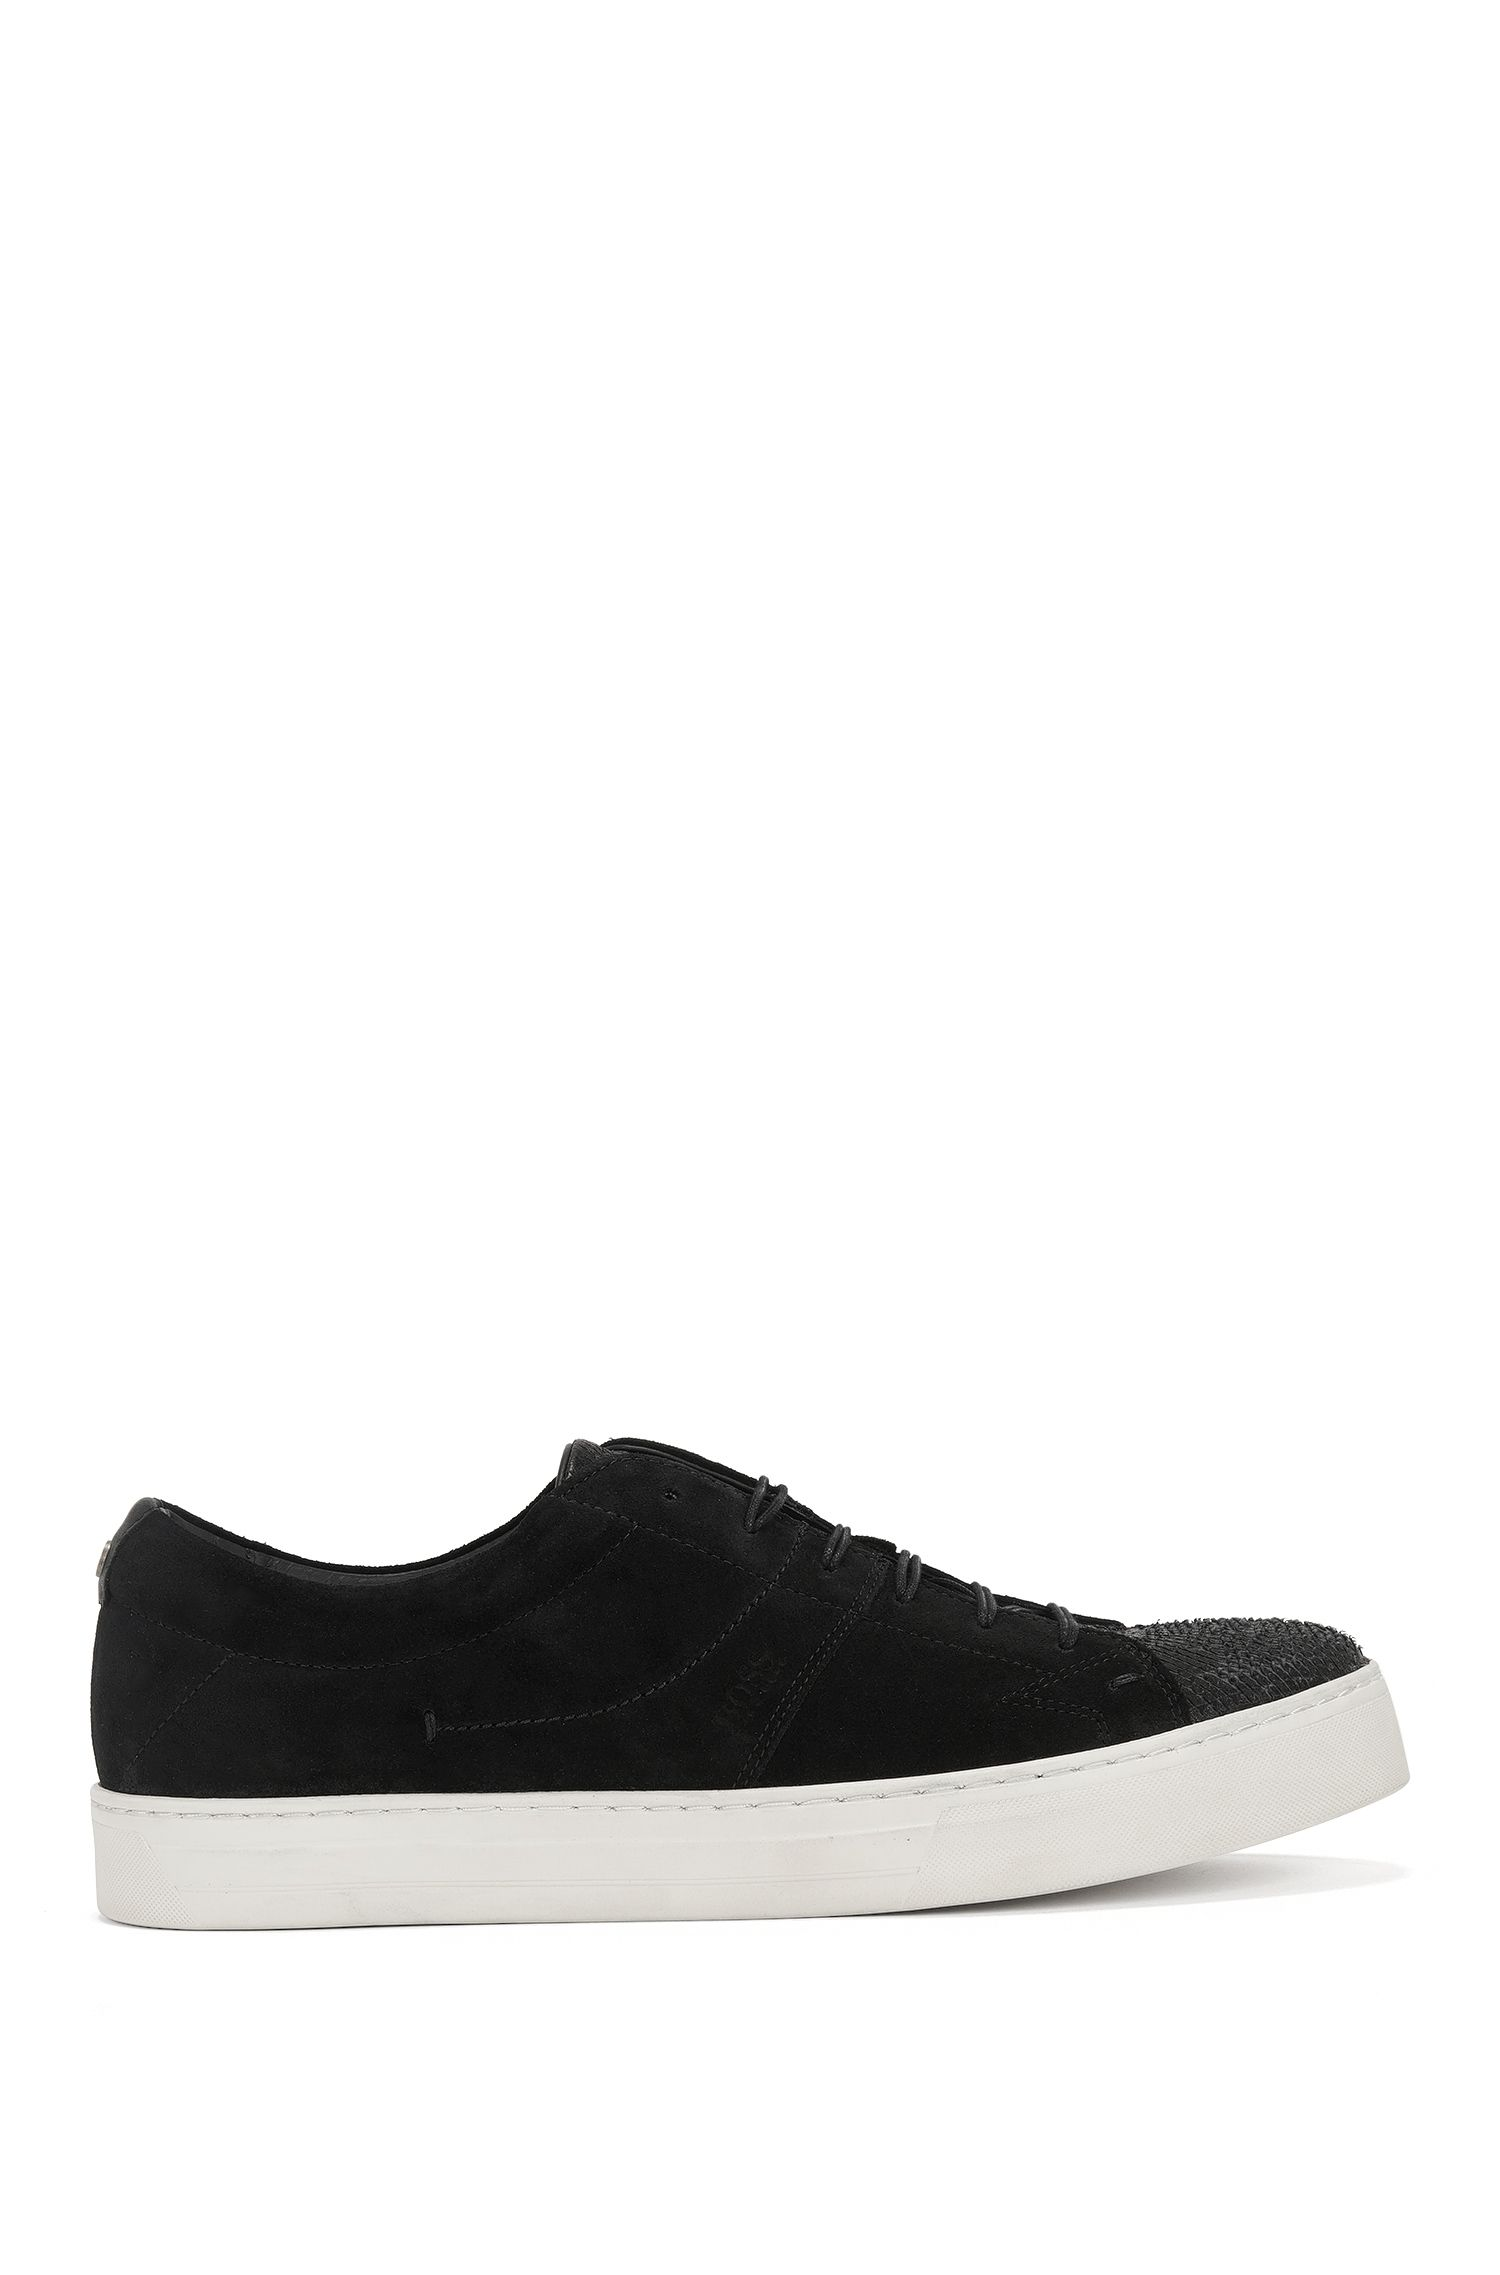 Tennis shoes in washed suede and lasered leather